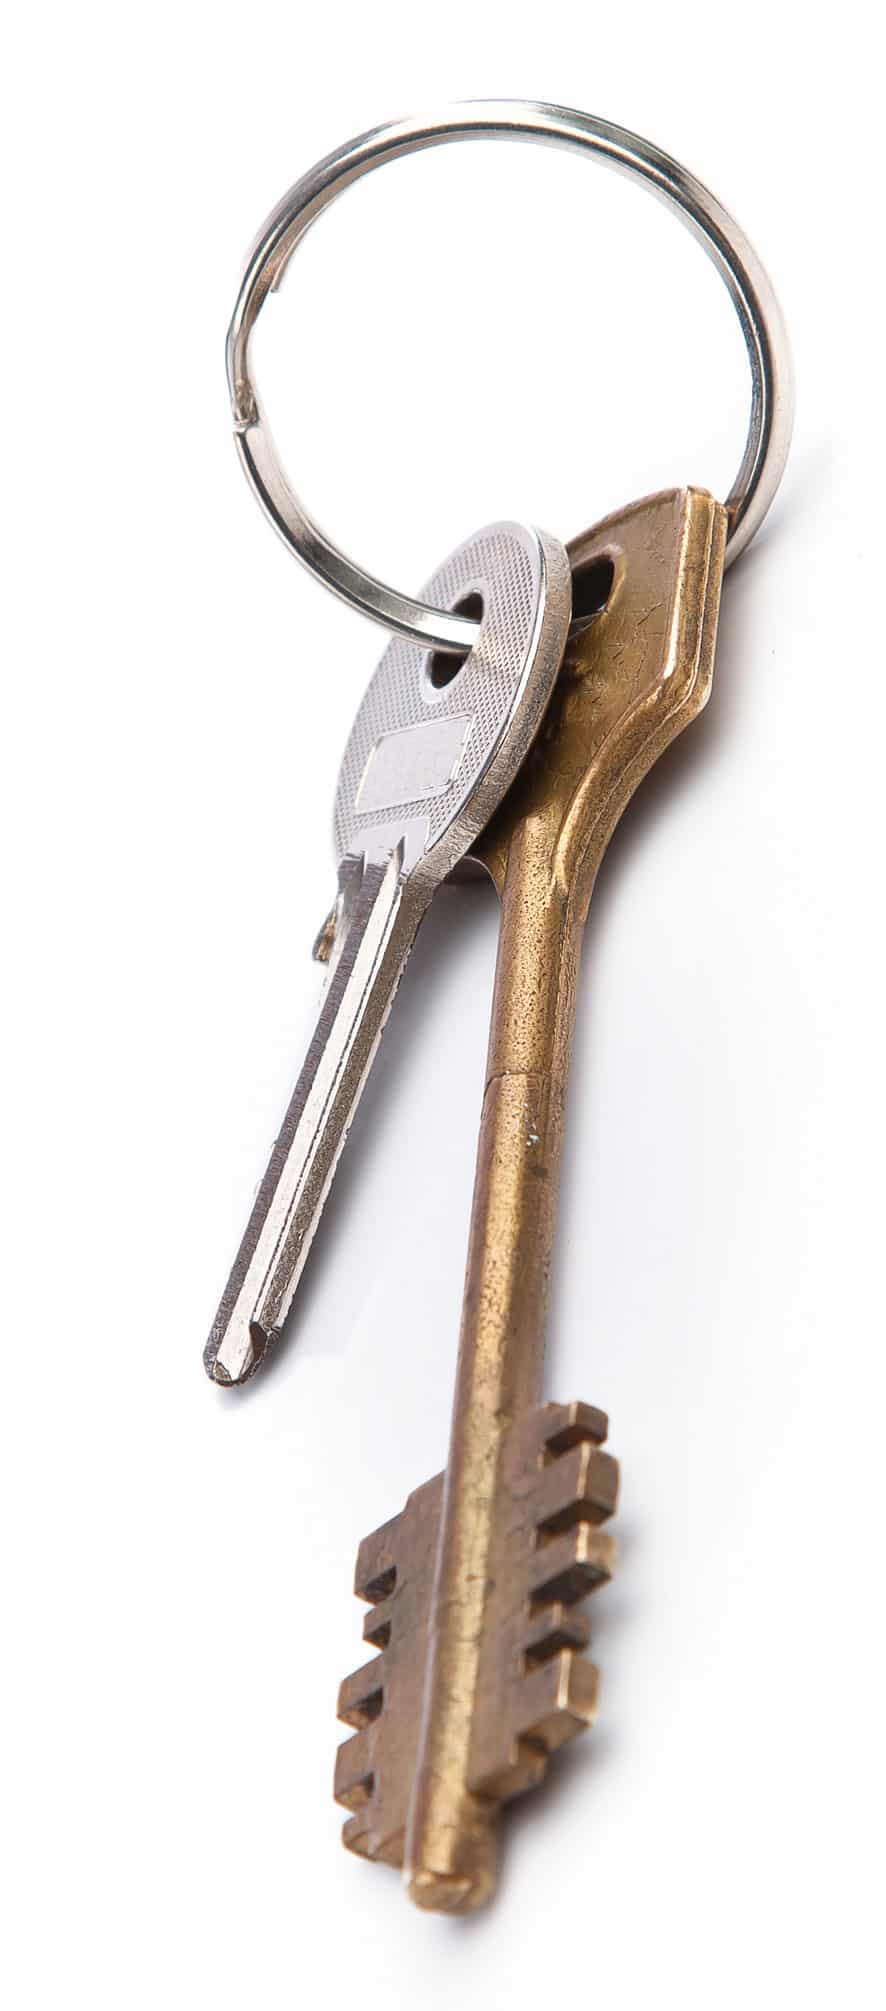 Silver and bronze keys from KC Locksmiths Brighton